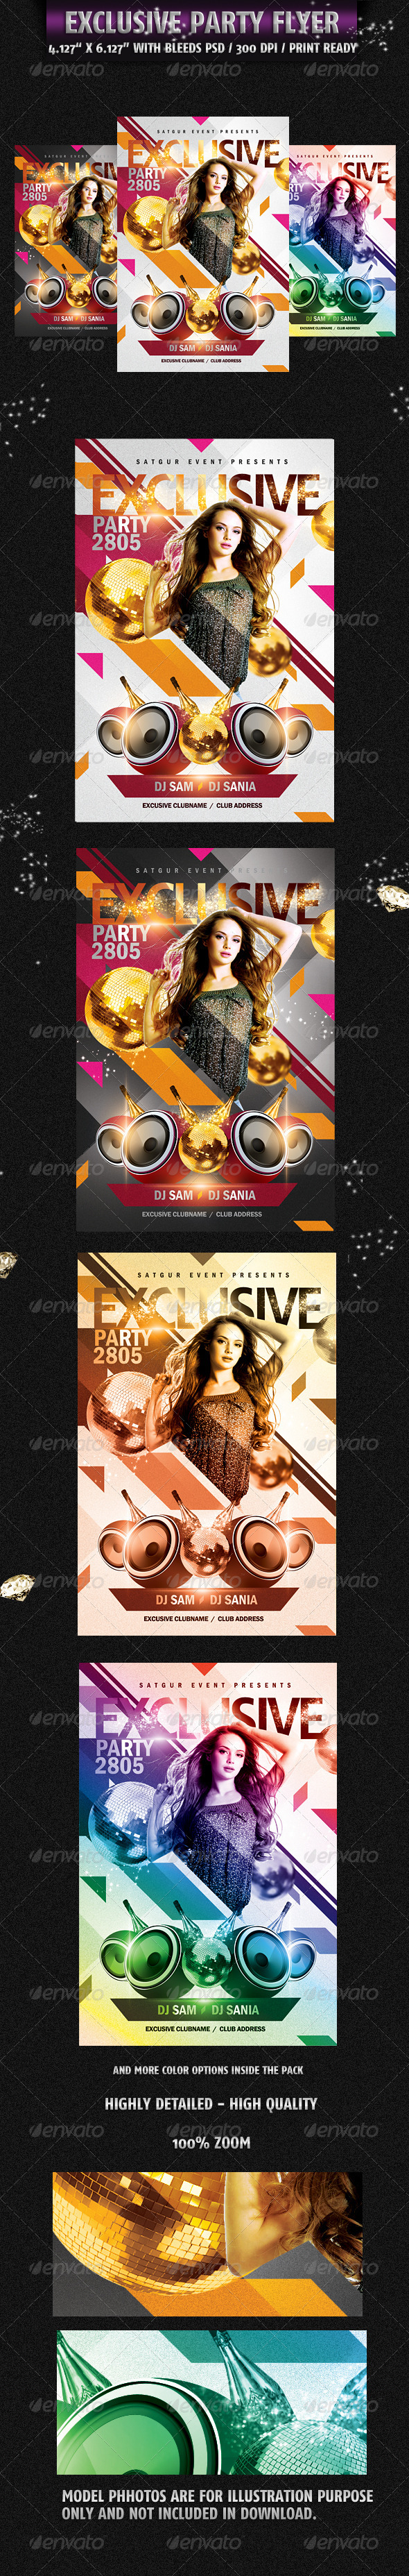 Exclusive Party Flyer - Flyers Print Templates